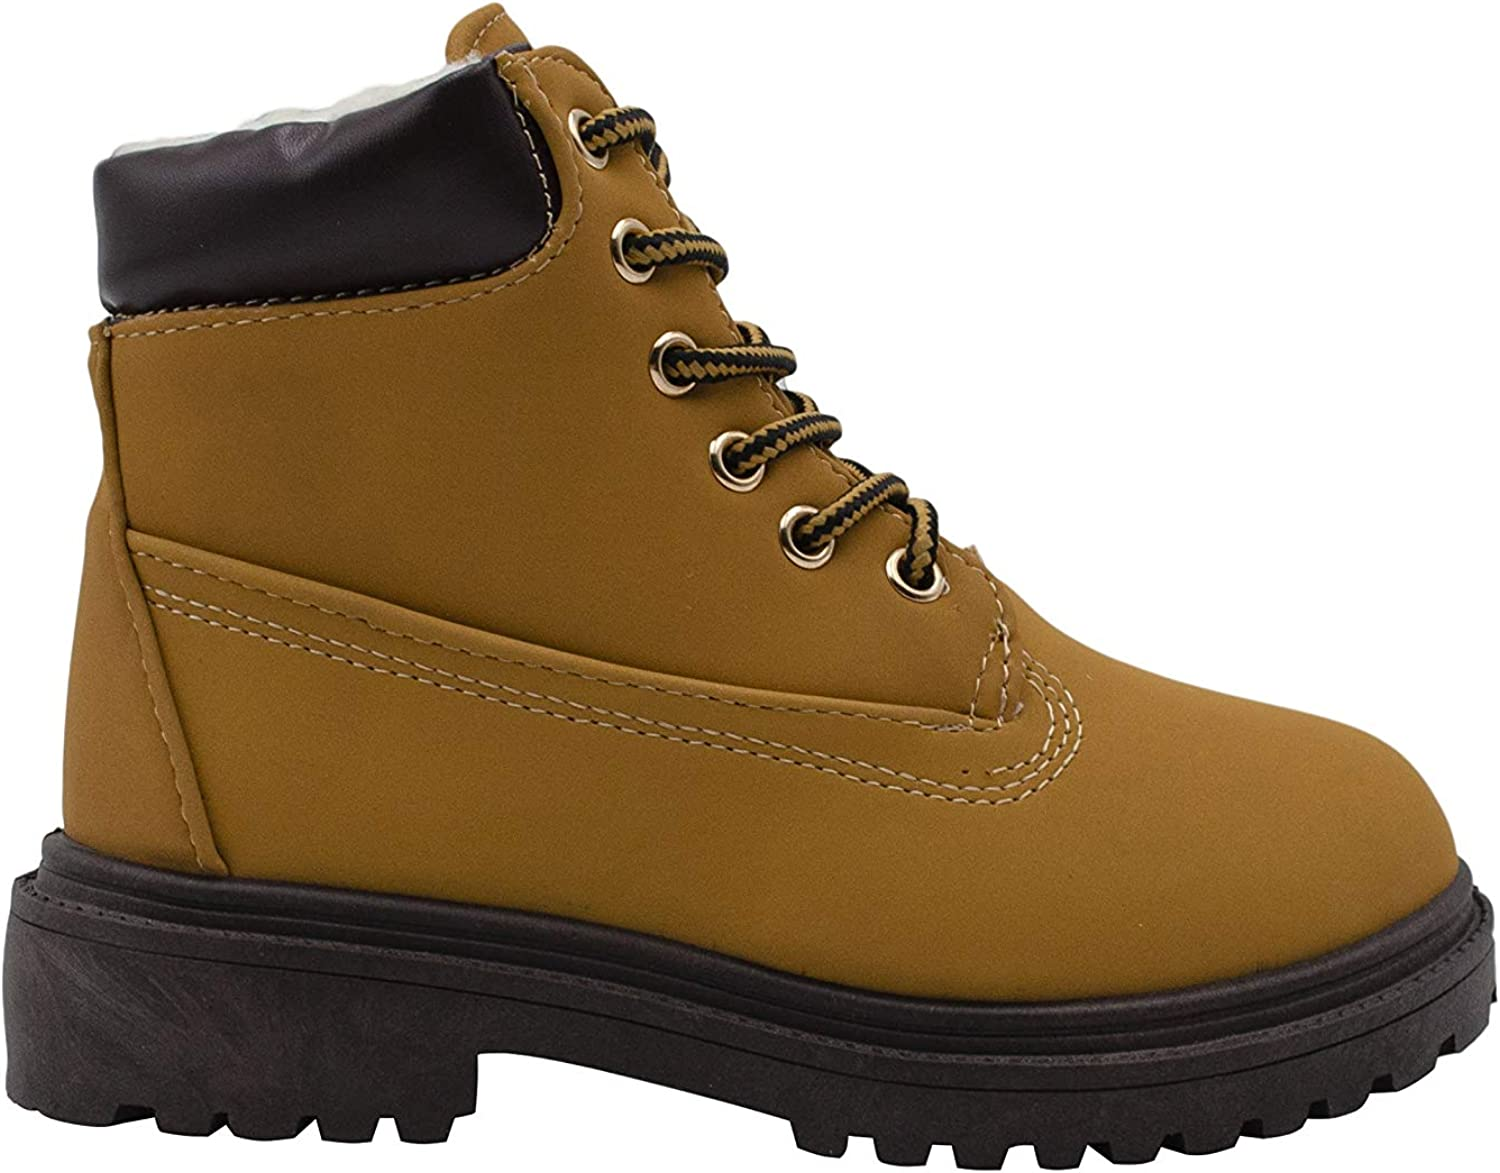 Xertia Boys' Nubuck PU Work Boots with Sherpa Lining, Lace-Up Warm Insulated Ankle Boots, Outdoor Hiking Comfort Fall Winter Shoes Tan Size 11